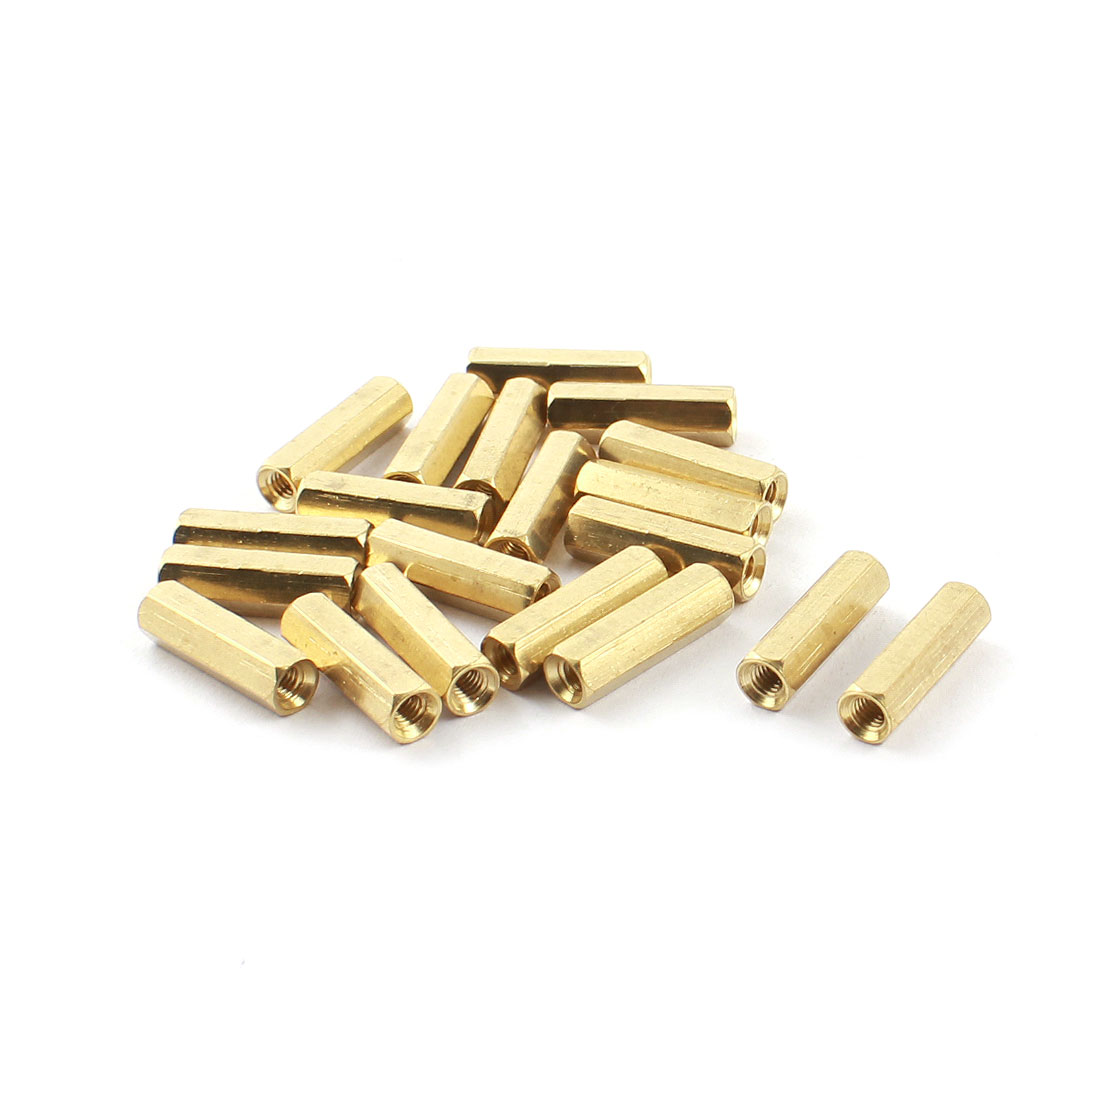 20 Pcs M3 x 16mm Female Thread Double Ends Gold Tone Brass Pillar PCB Standoff Hexagonal Nut Spacer